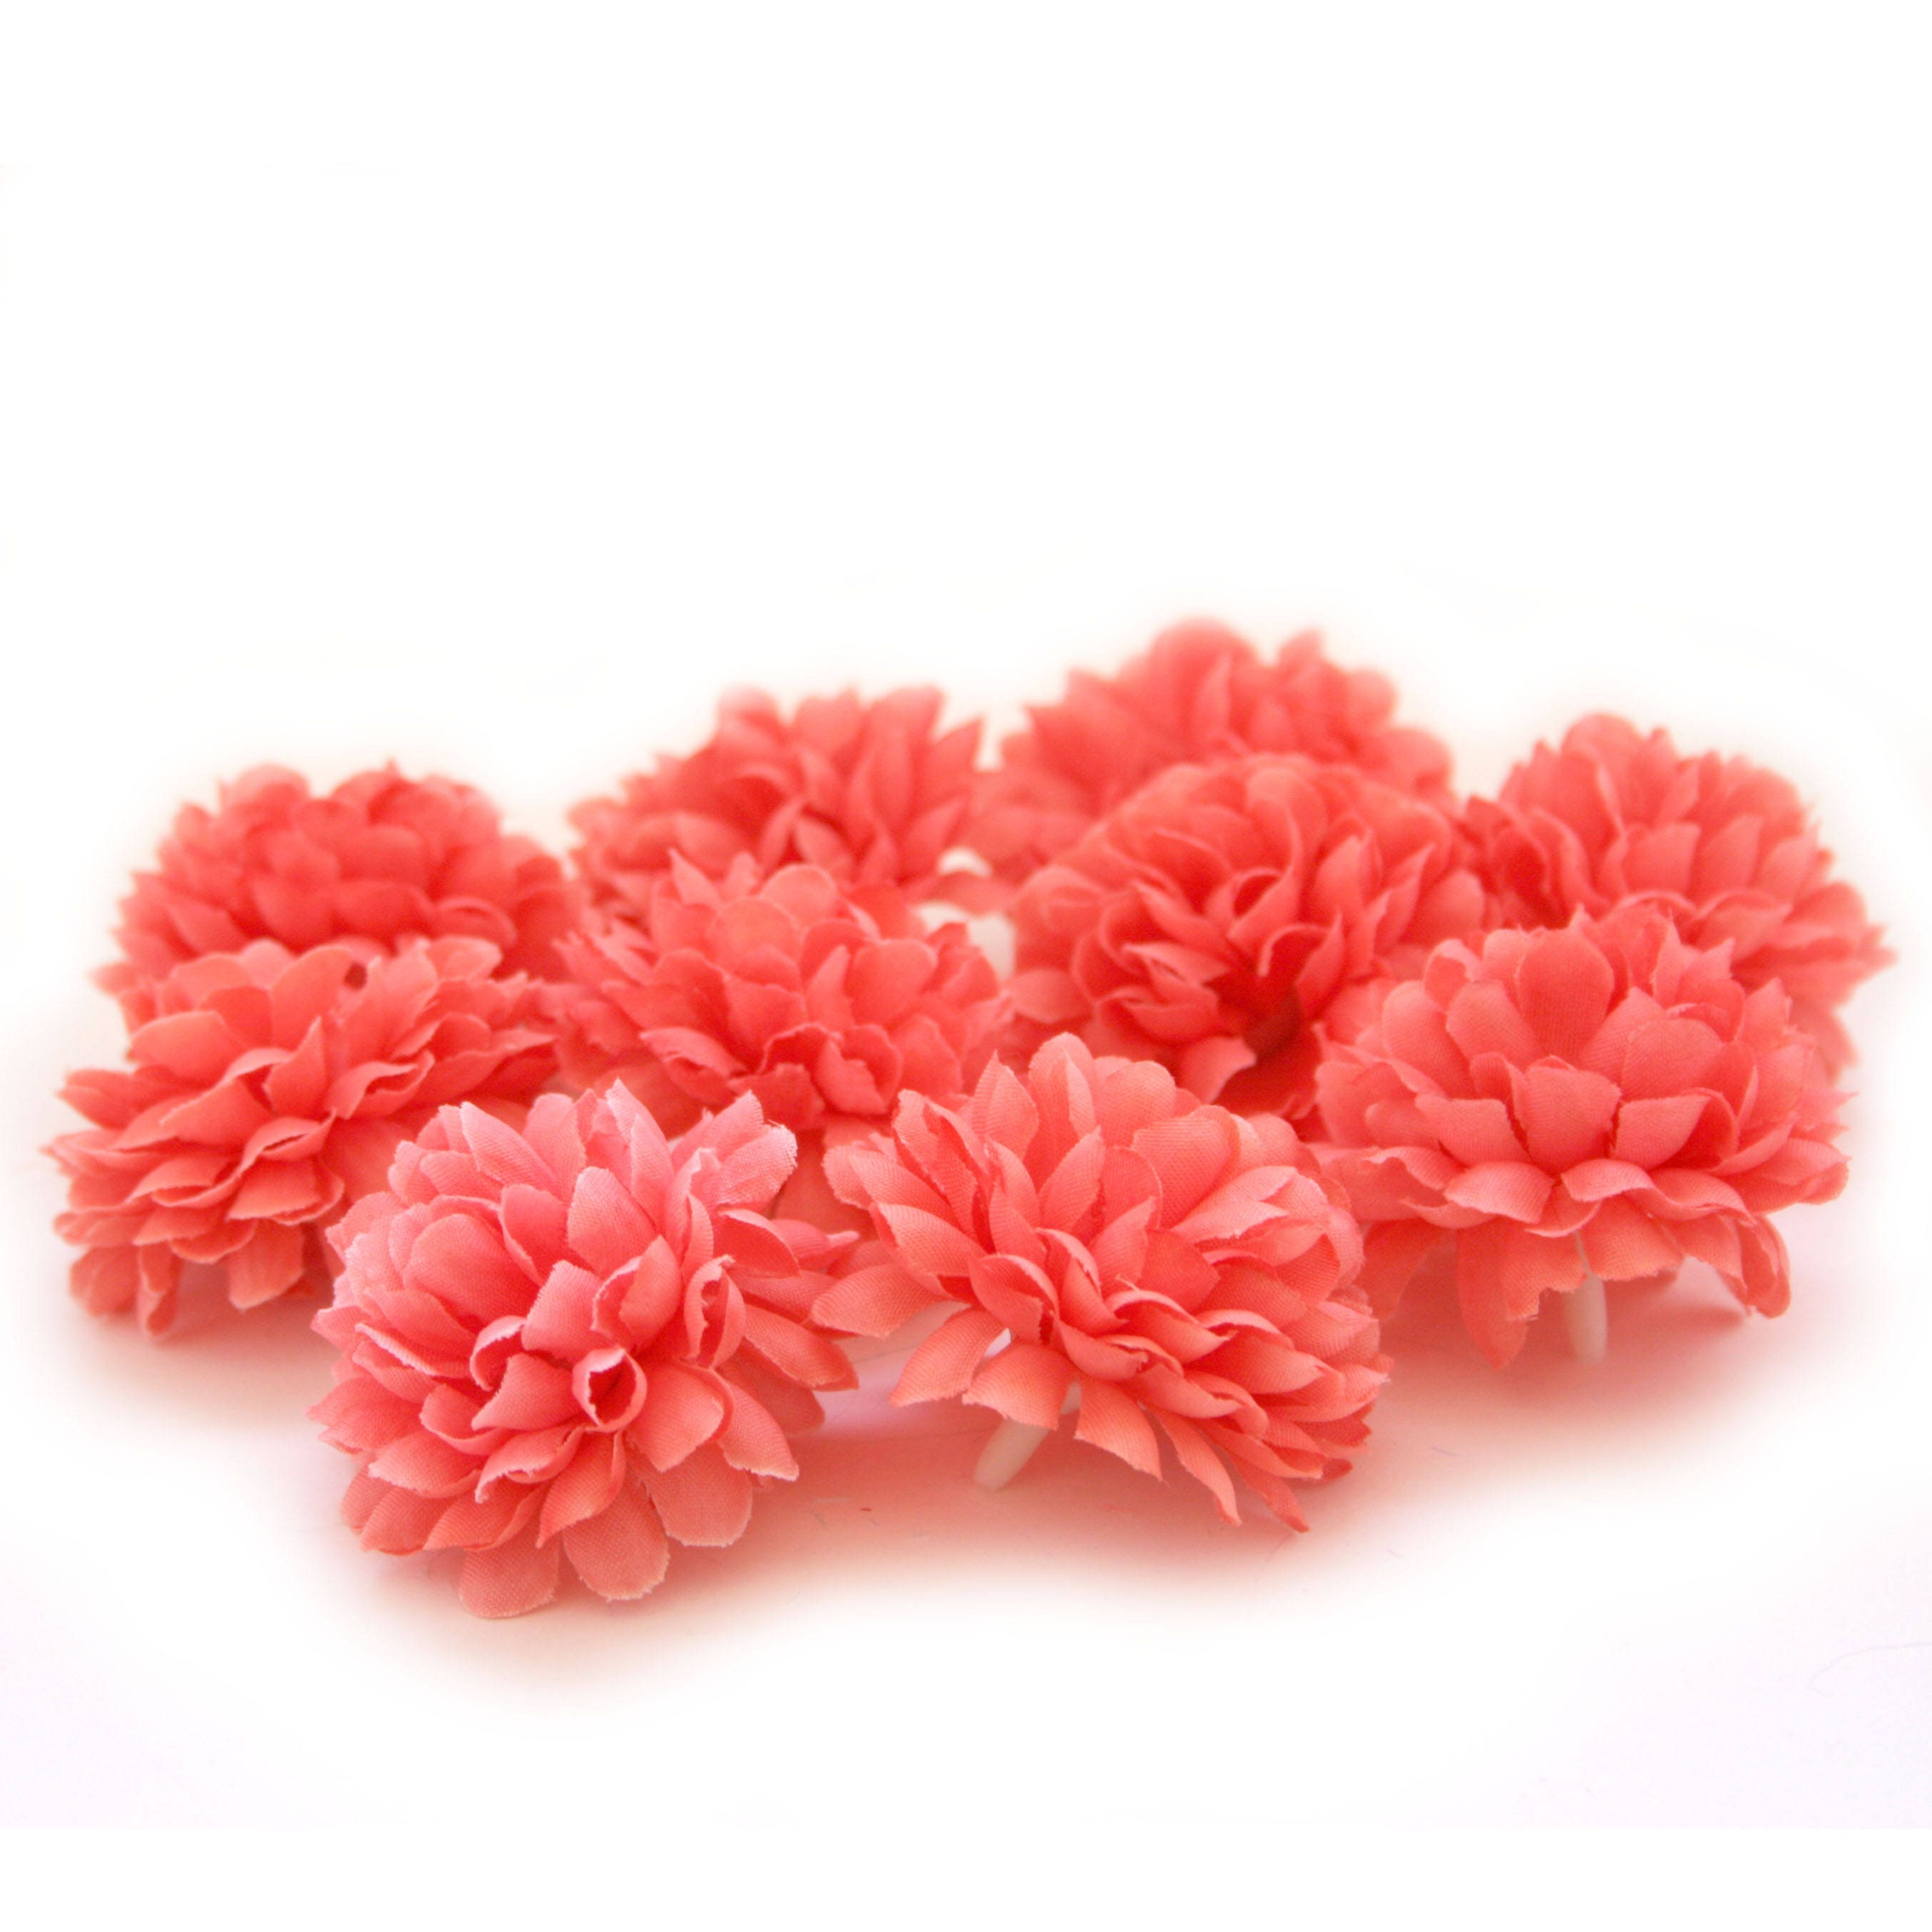 Coral Pom Pom Carnations - 25 count - Artificial Flowers, Silk ...